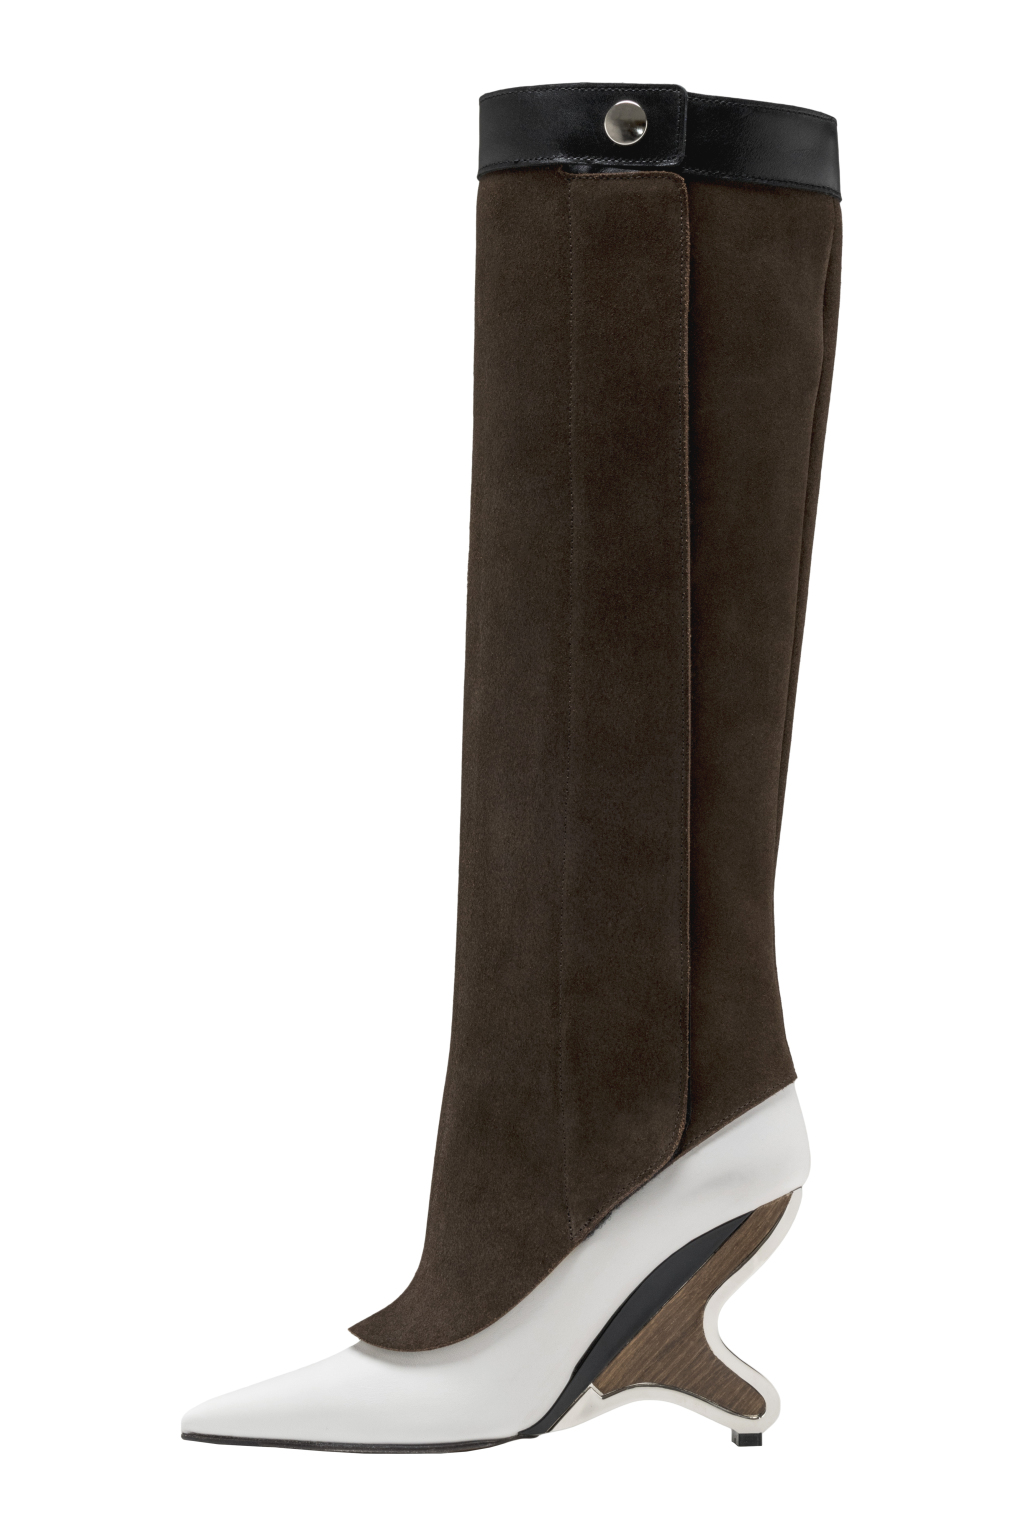 11-marni-tall-boot-12